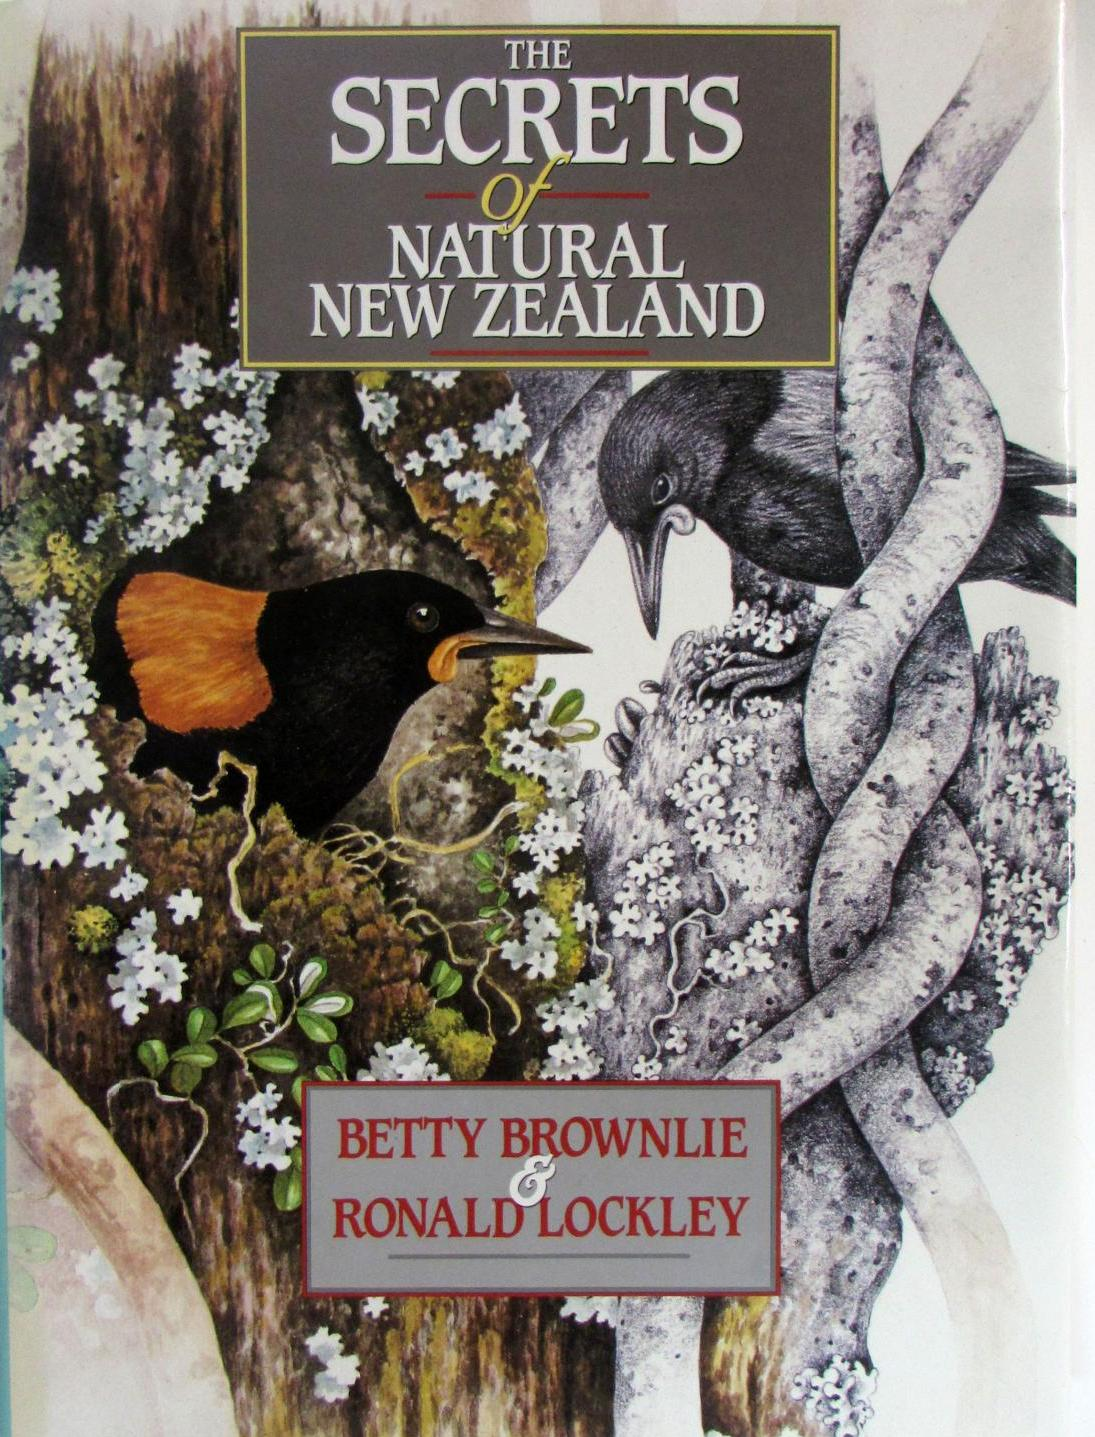 The Secrets of Natural New Zealand